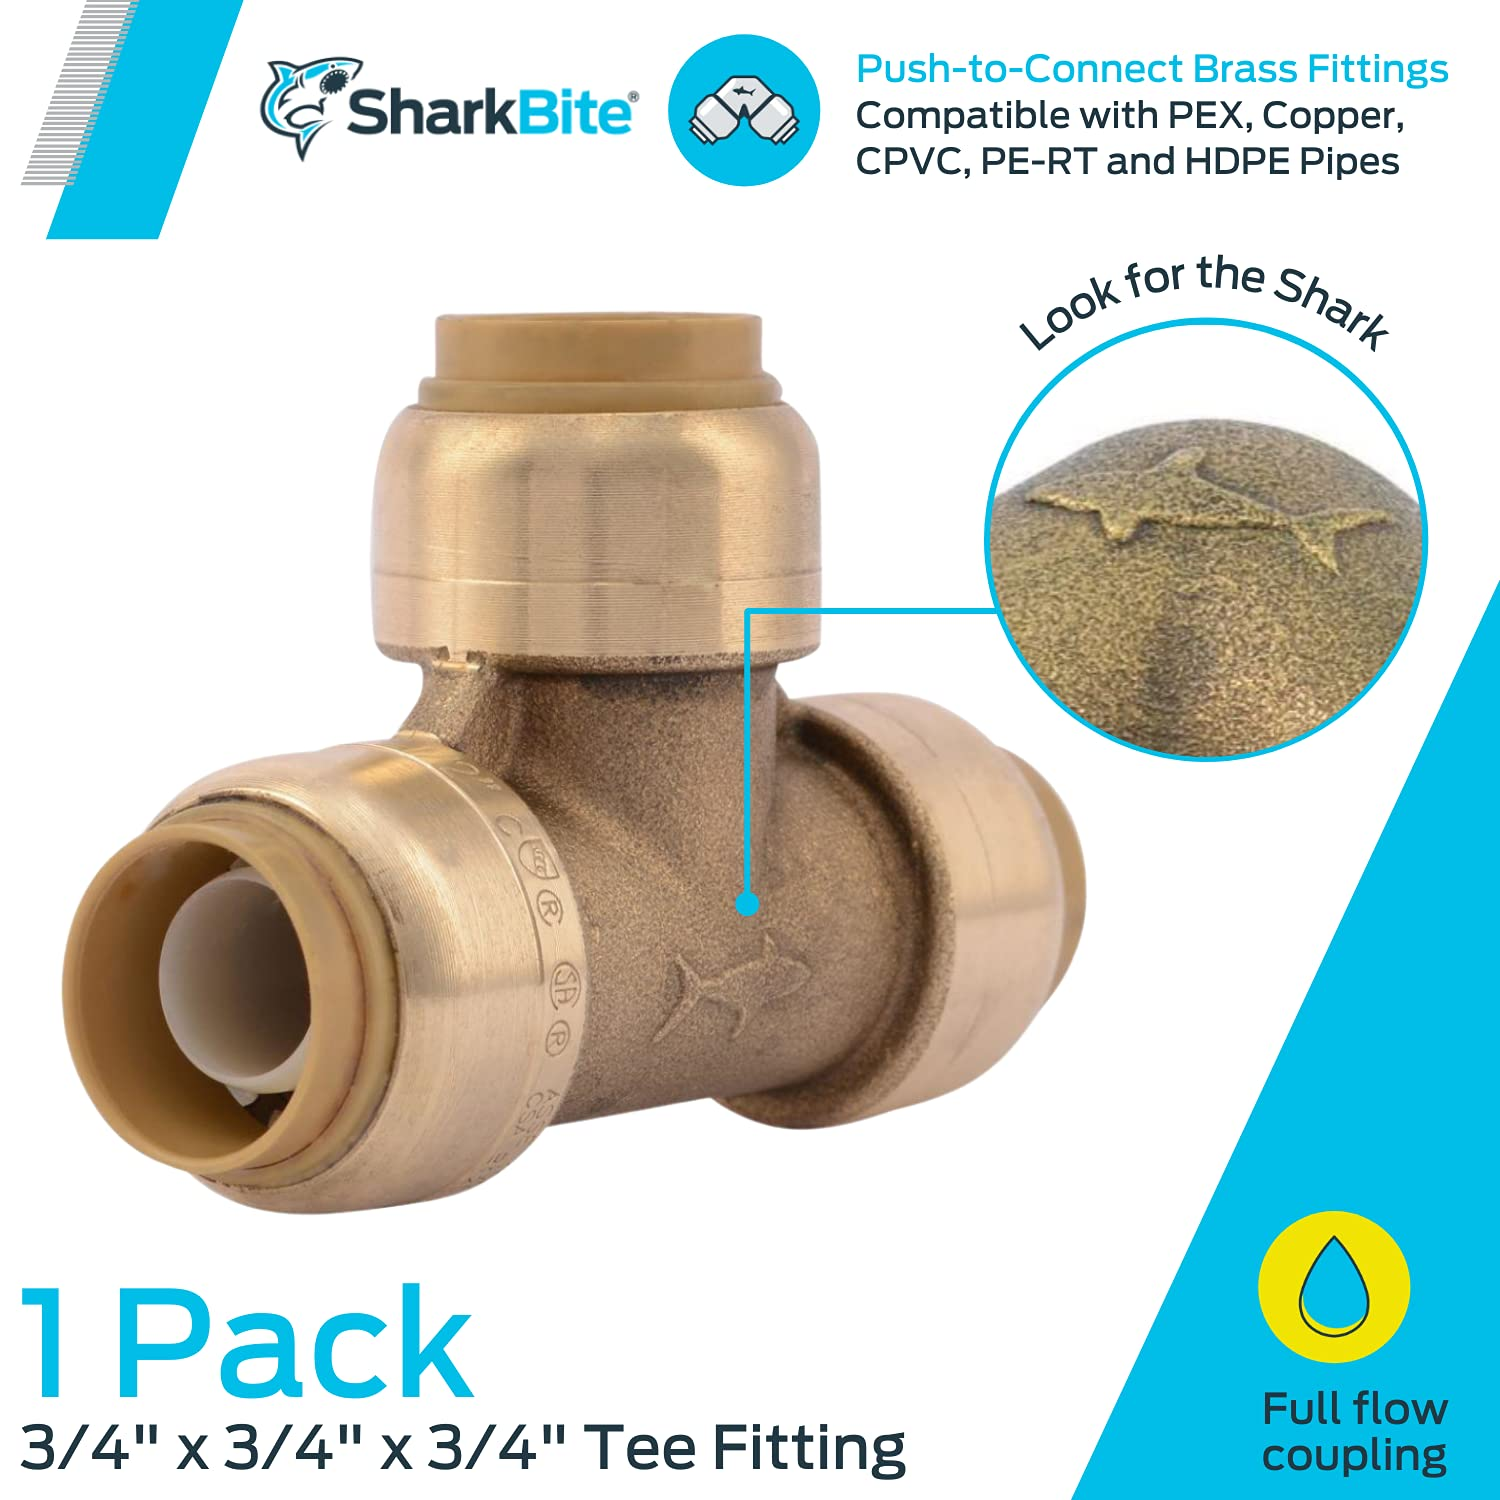 SharkBite U370LFA Tee Plumbing Pipe Connector 3/4 In, PEX Fittings, Push-to-Connect, Copper, CPVC, 3/4-Inch by 3/4-Inch by 3/4-Inch